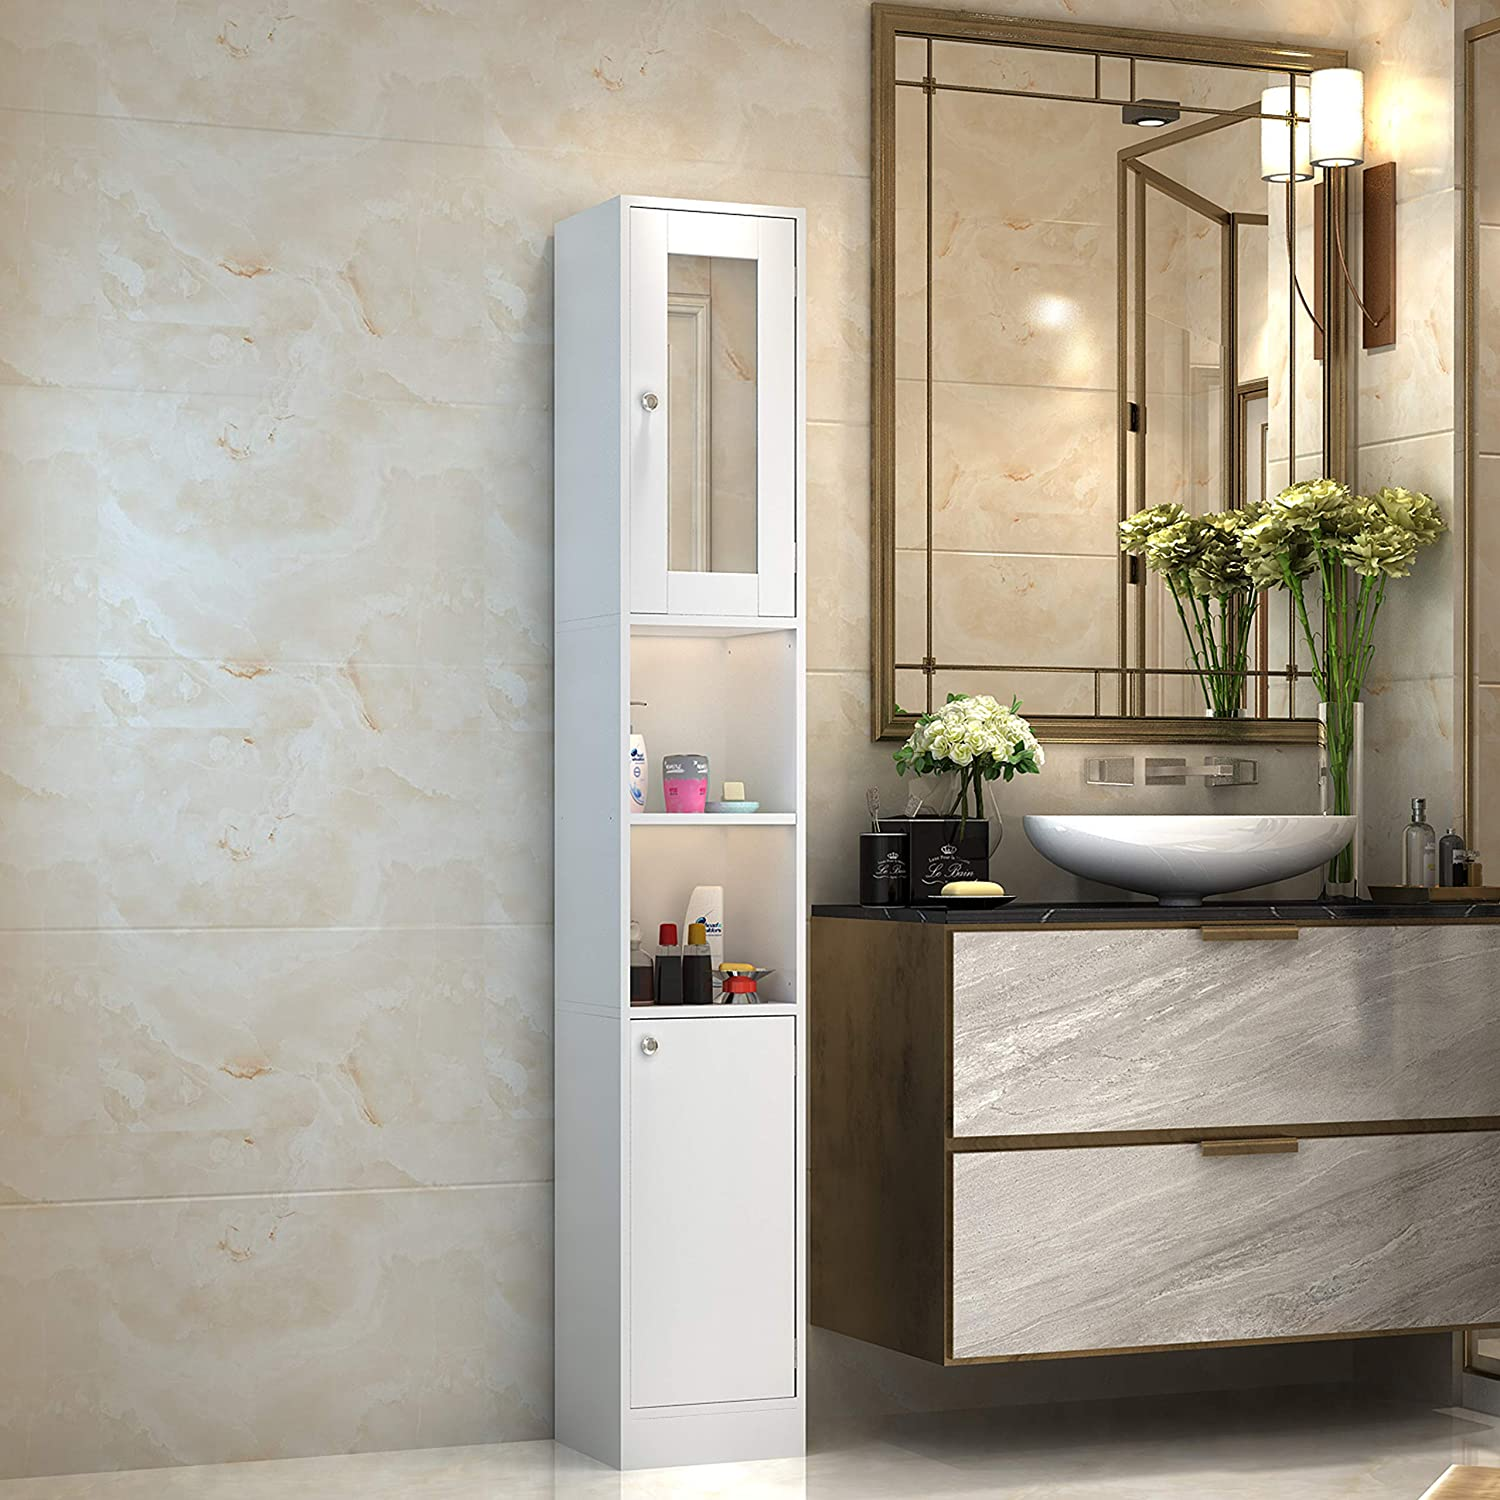 Raintain Bathroom Cabinet, Freestanding Storage Cabinet with 2 Open Shelves and Cupboard, Floor Cabinet for Living Room Kitchen Study Entryway, Ivory White